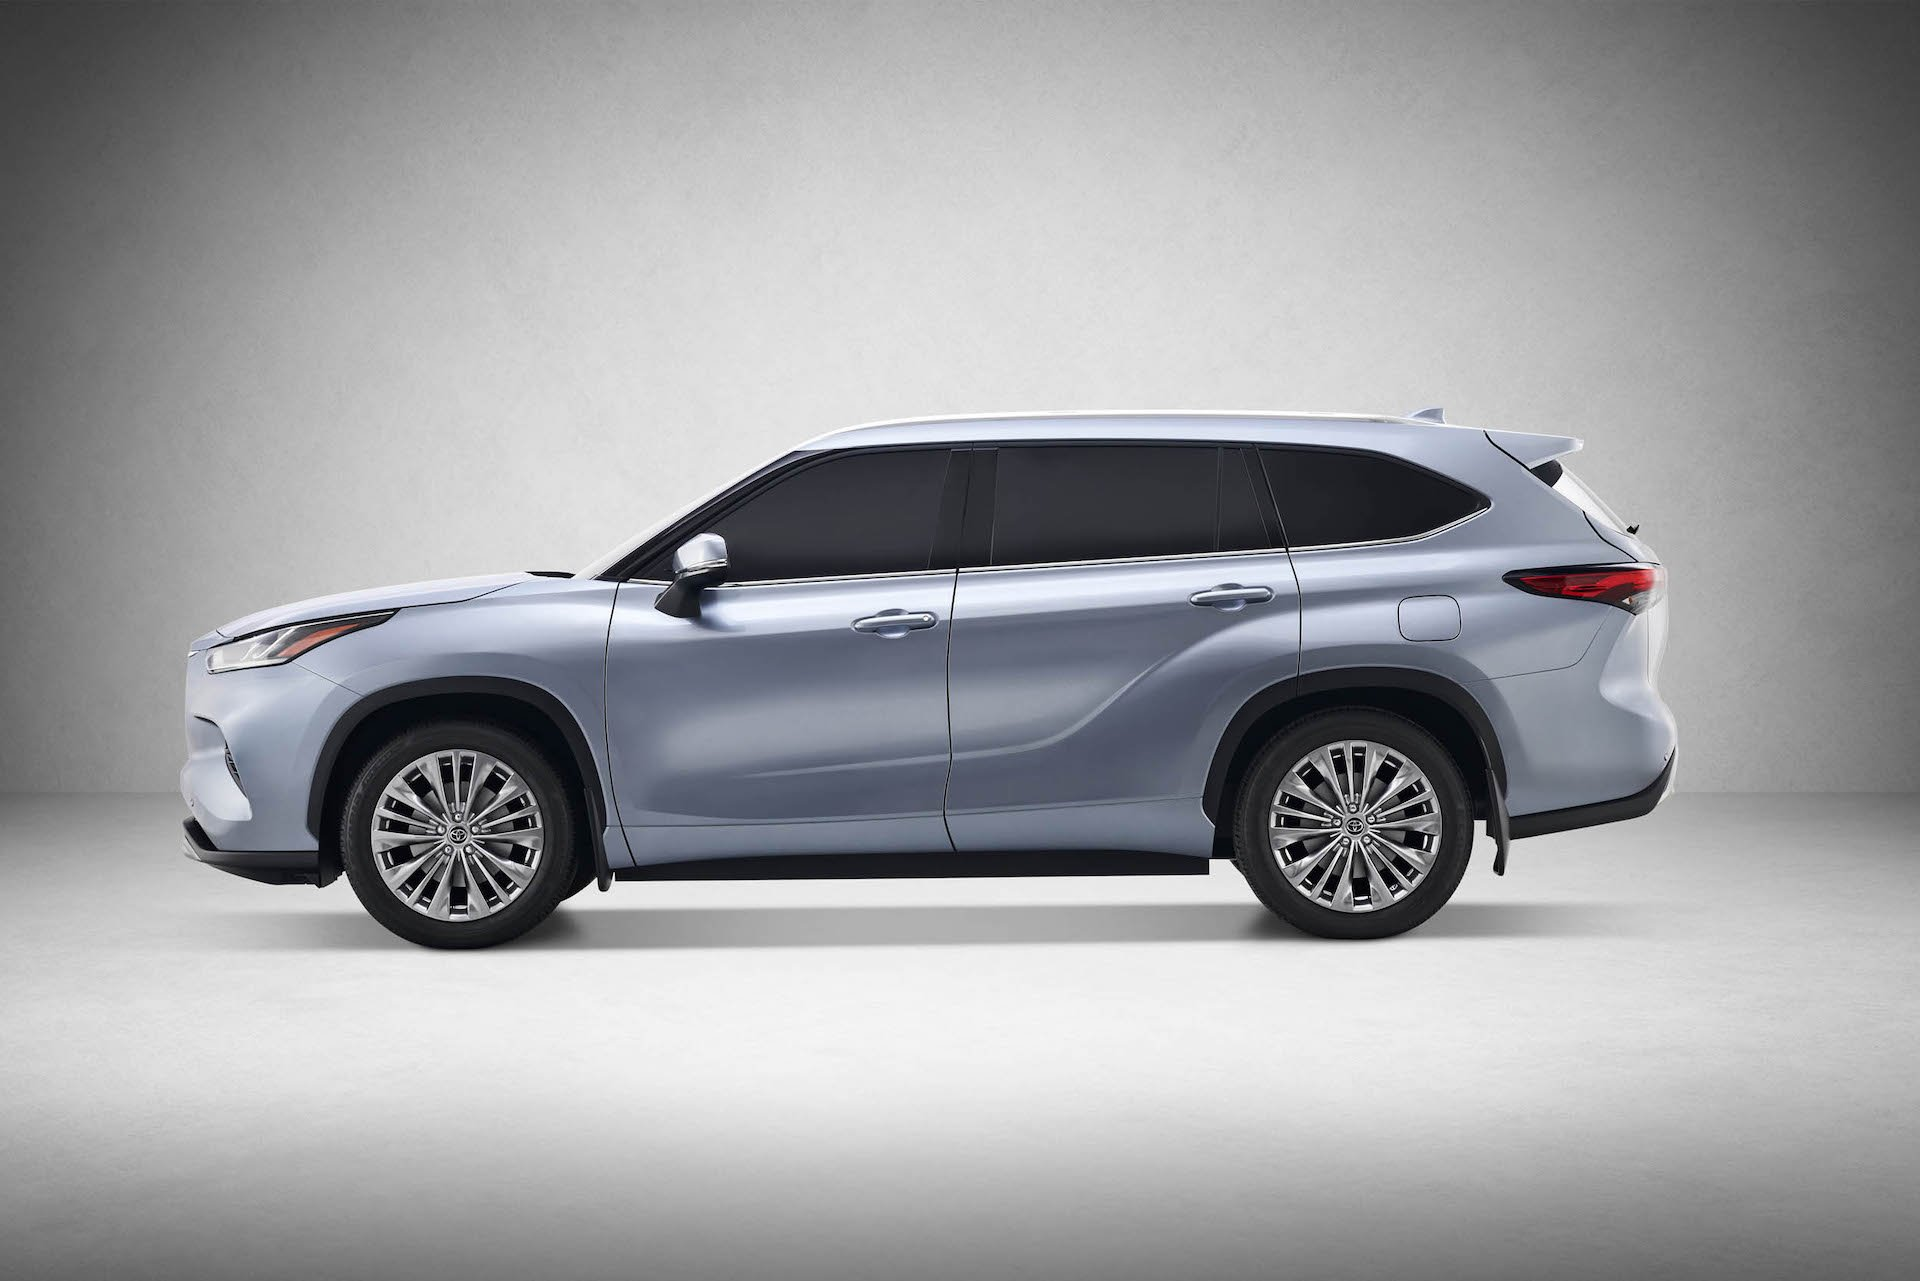 Toyota Highlander a hybrid-electric powertrain equipped with the most advanced technology with an exceptional fuel efficiency